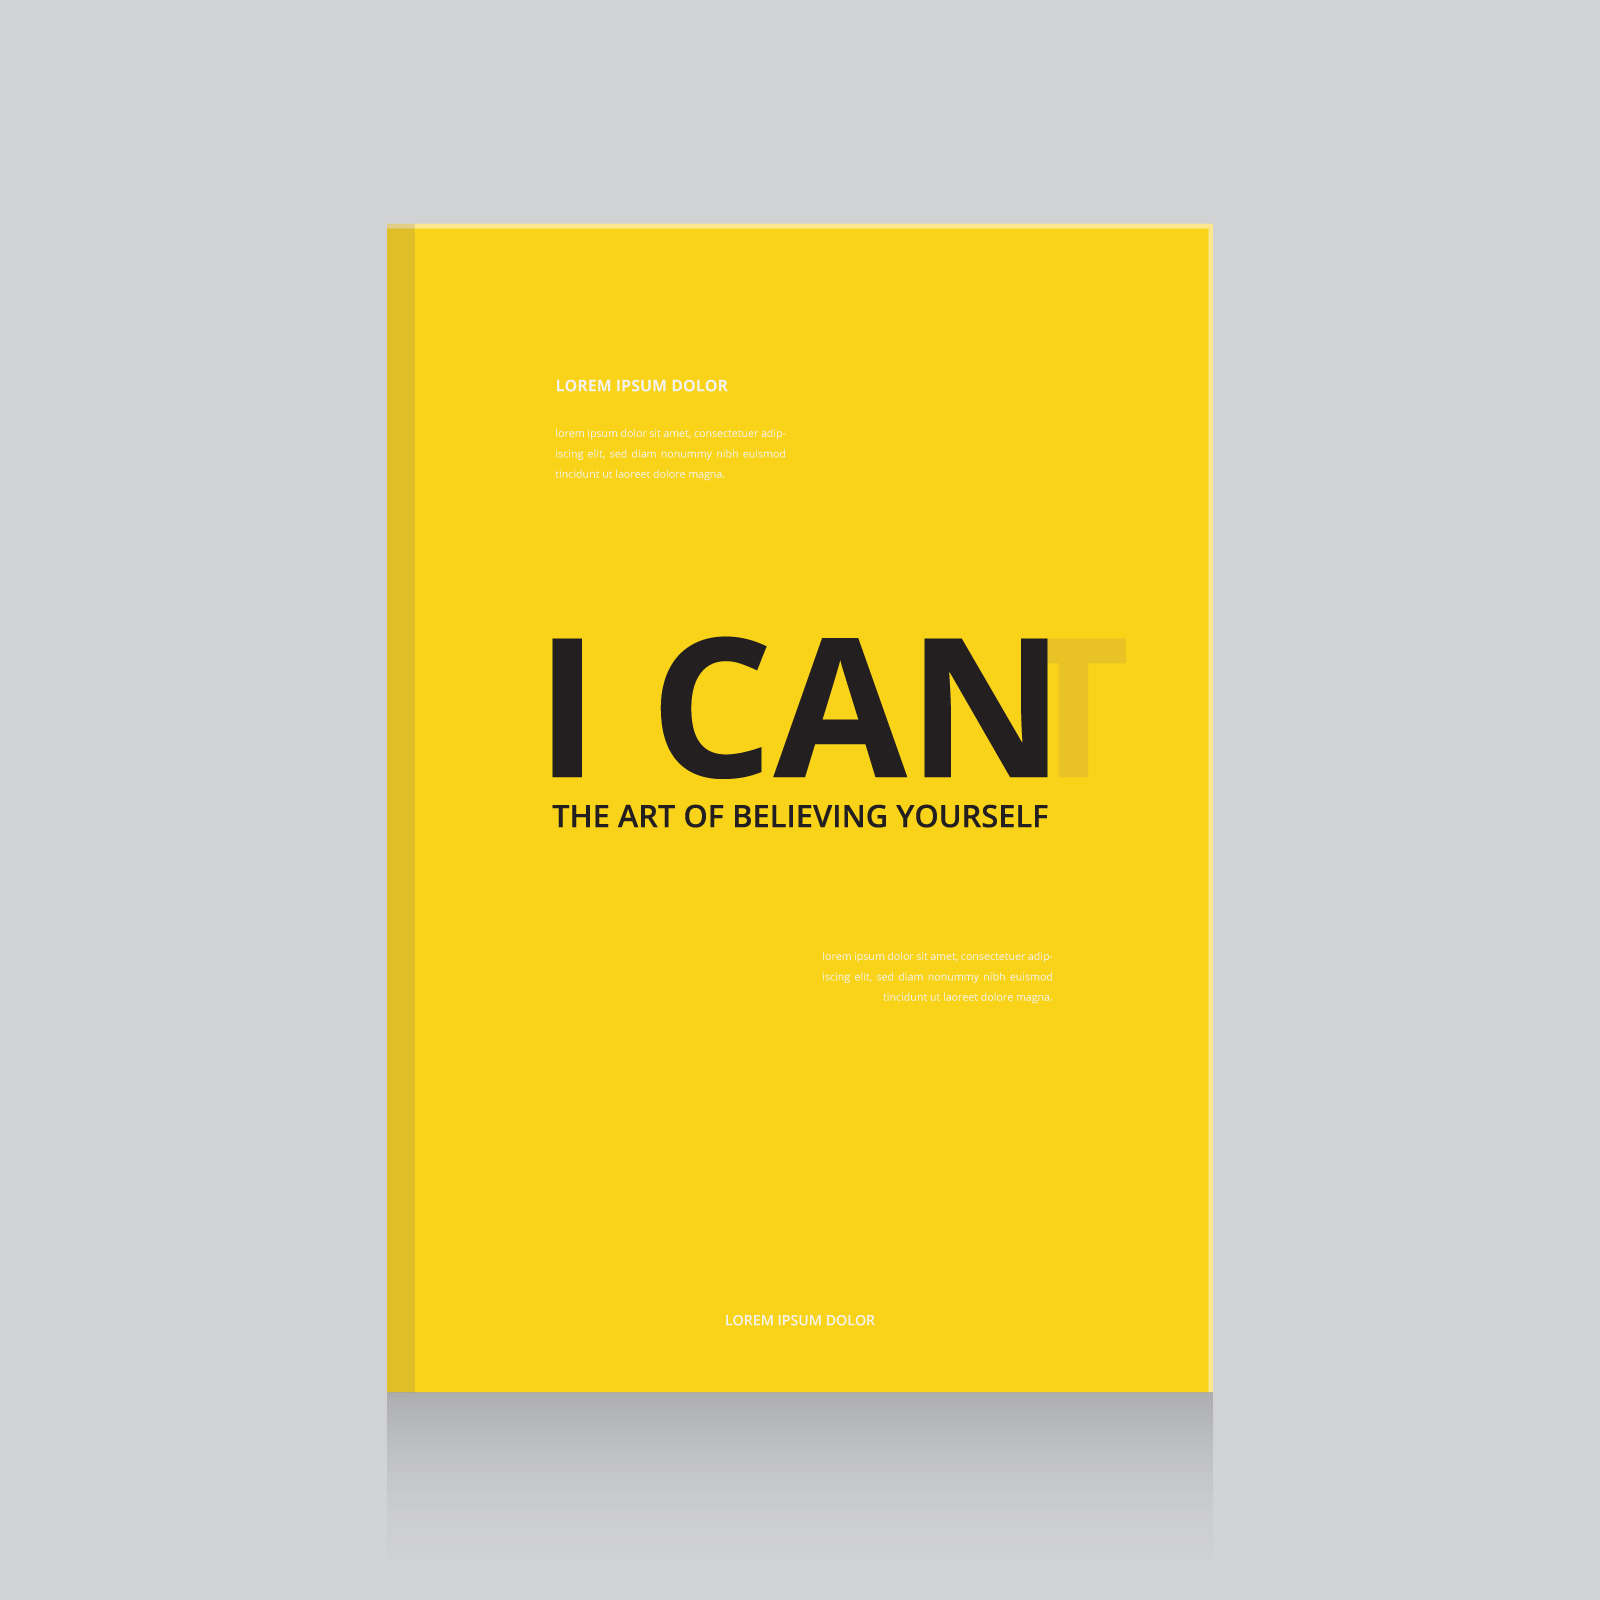 Home Design Ideas Buch: Simple And Effective Motivational Book Cover Design